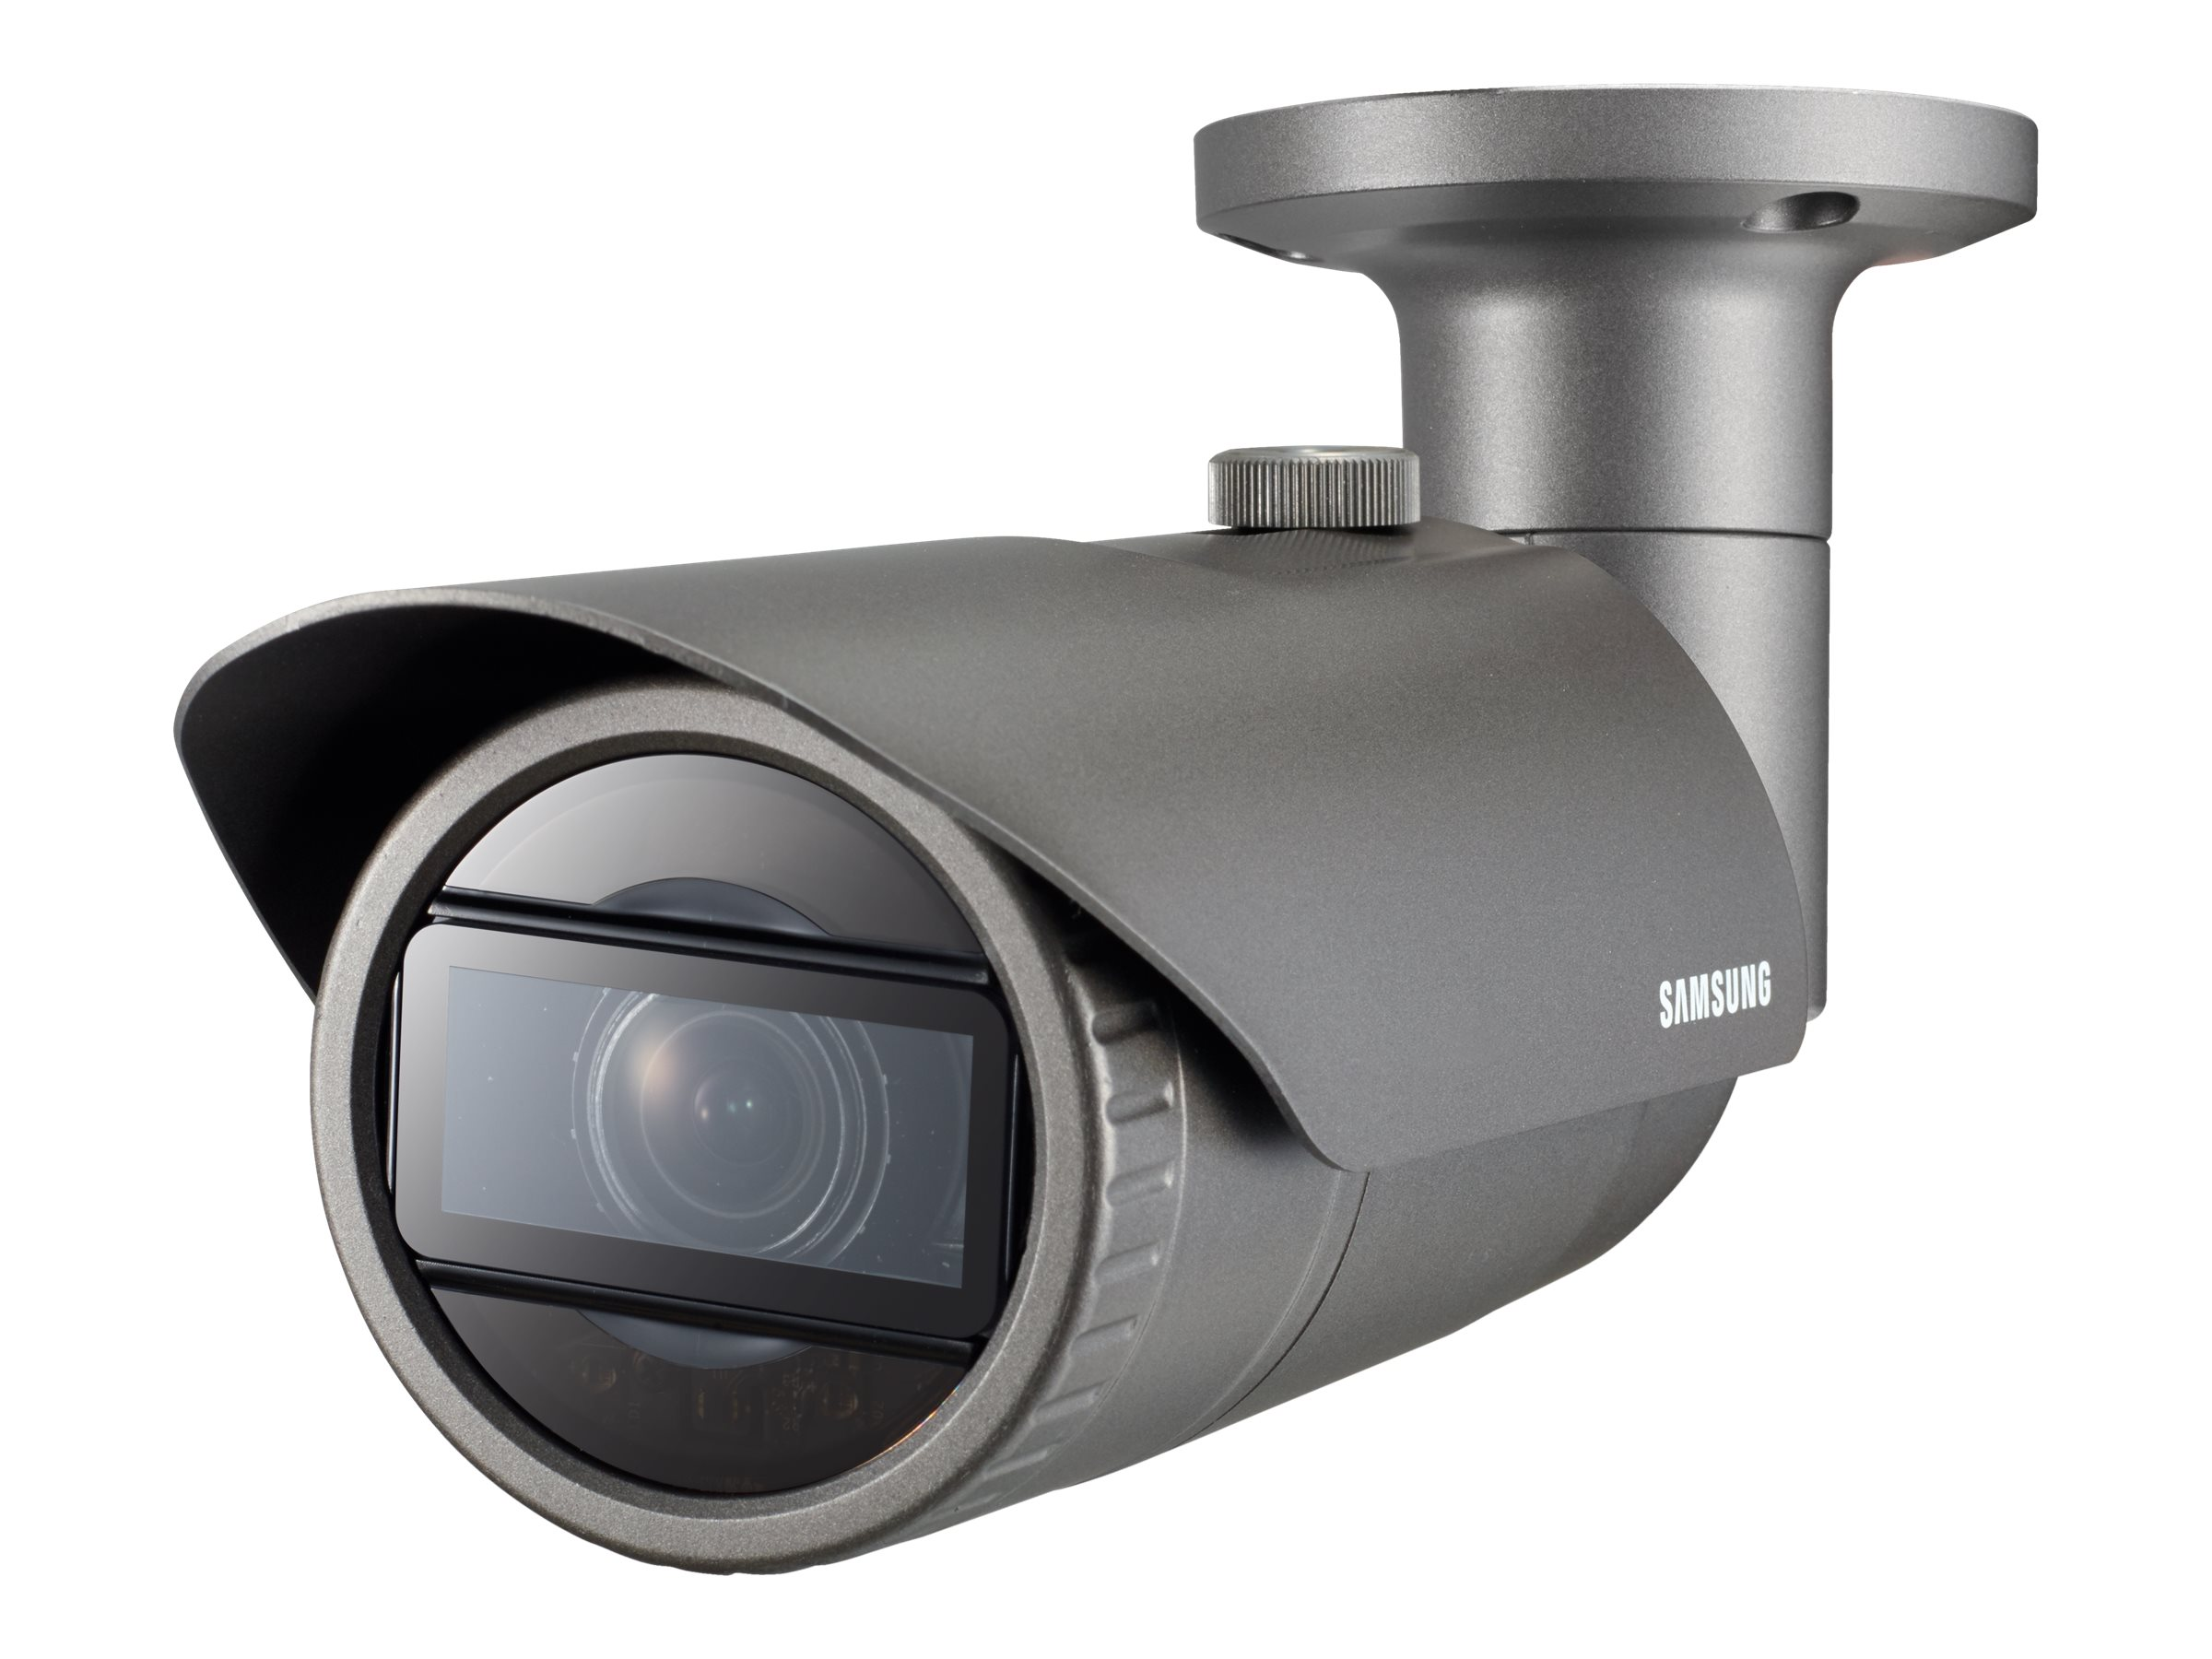 Samsung 4MP Network IR Bullet Camera with 2.8-12mm Lens, QNO-7080R